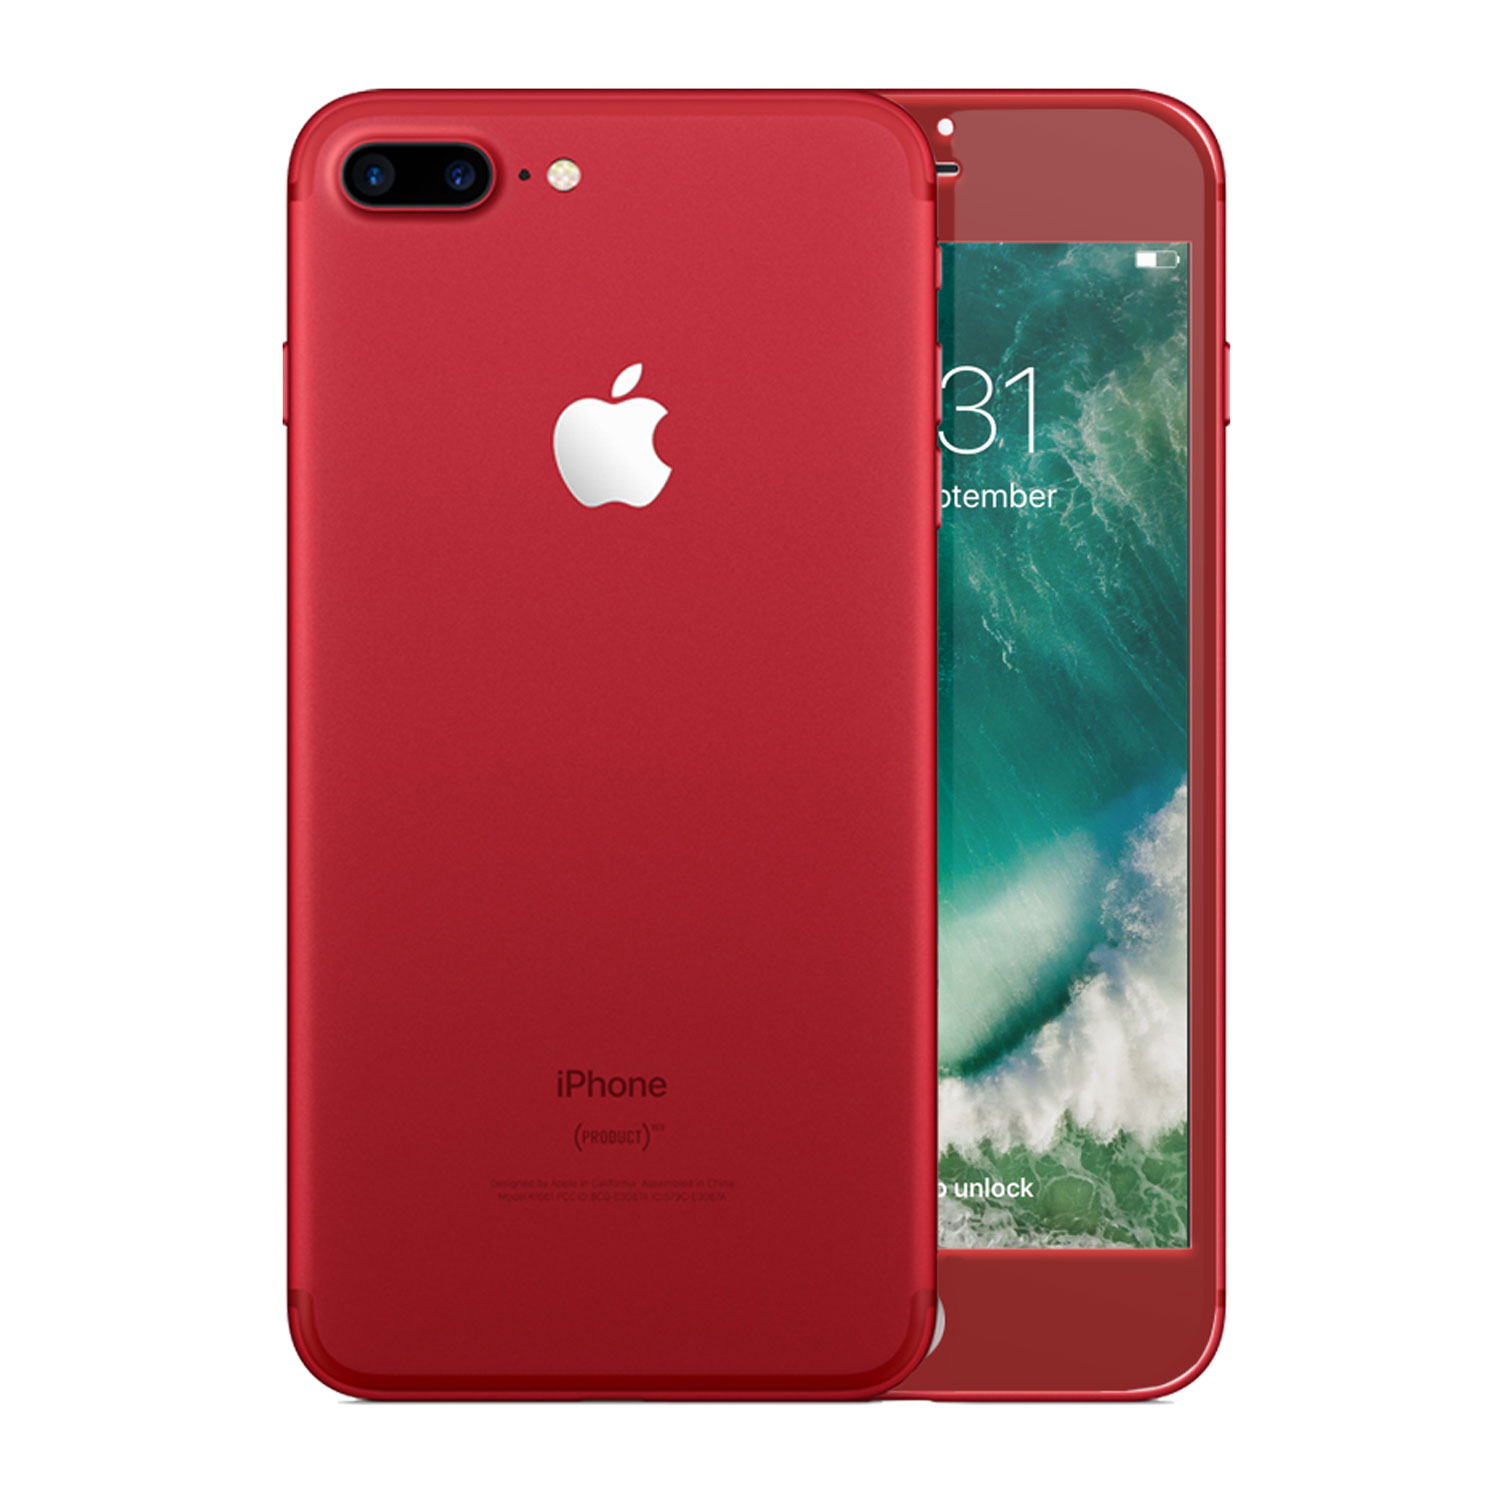 Olixar iPhone 7 Plus Edge to Edge Glass Screen Protector - Red